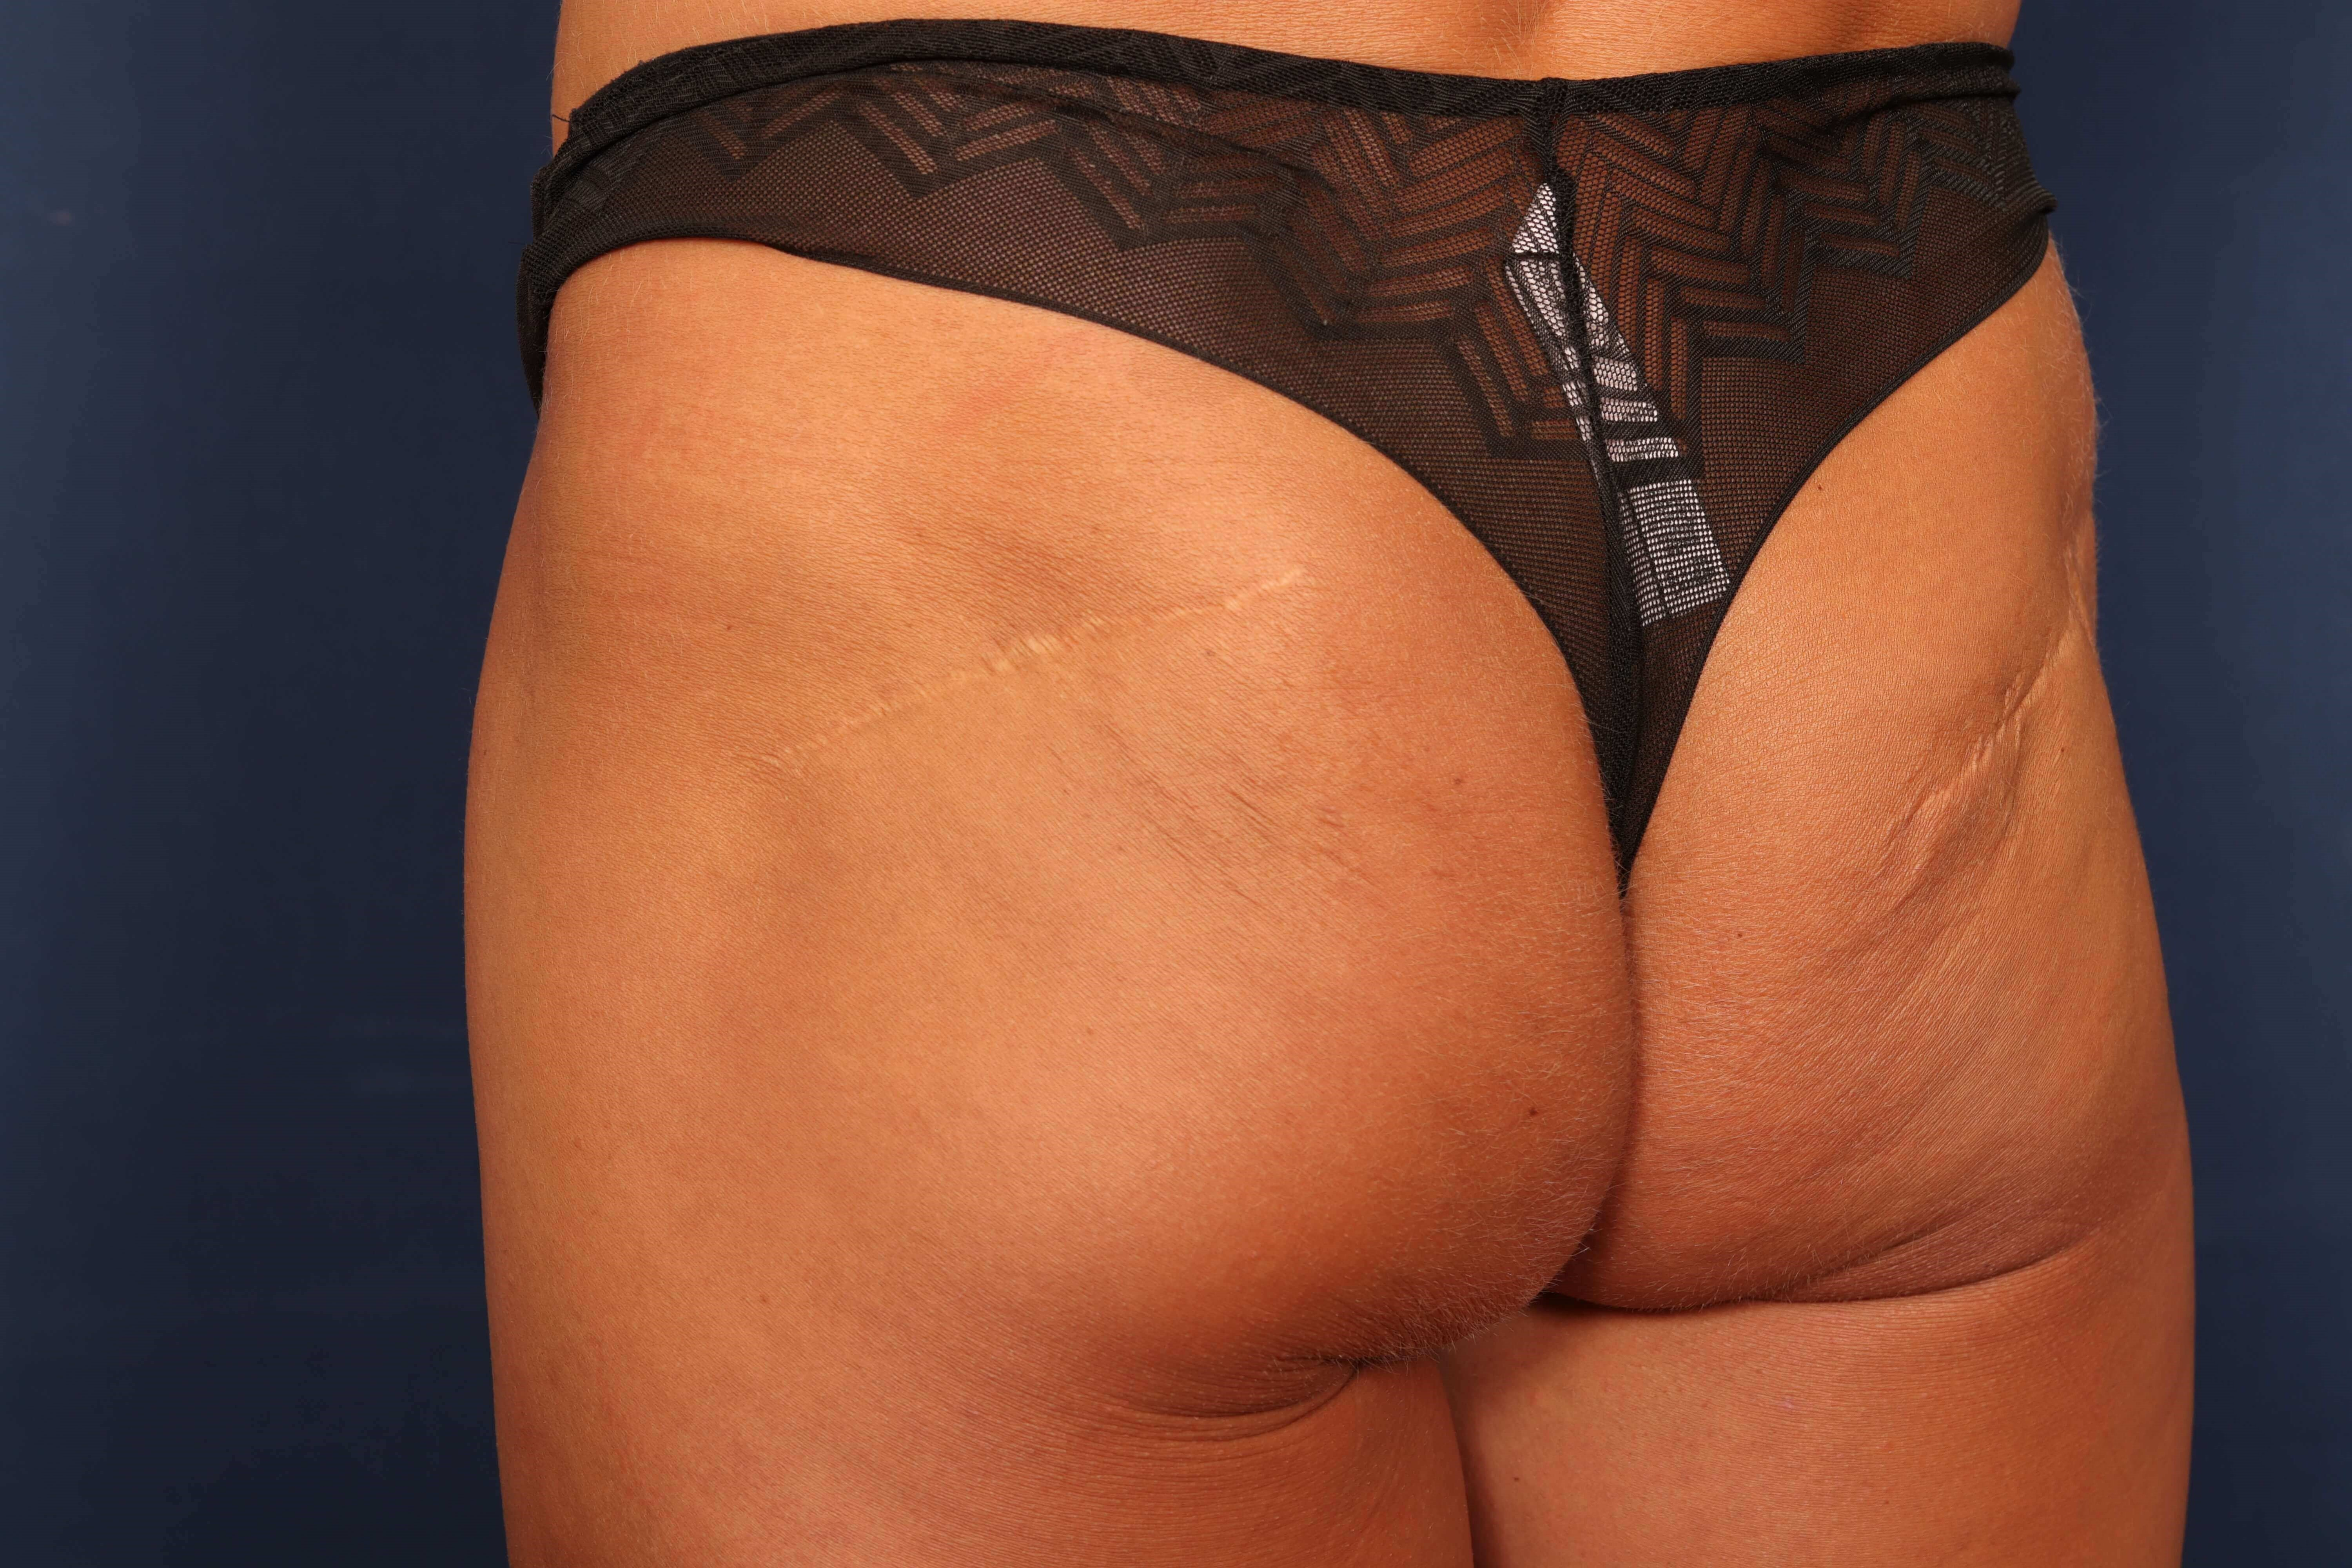 Buttock Scar Revision/Excision Procedure 1 After